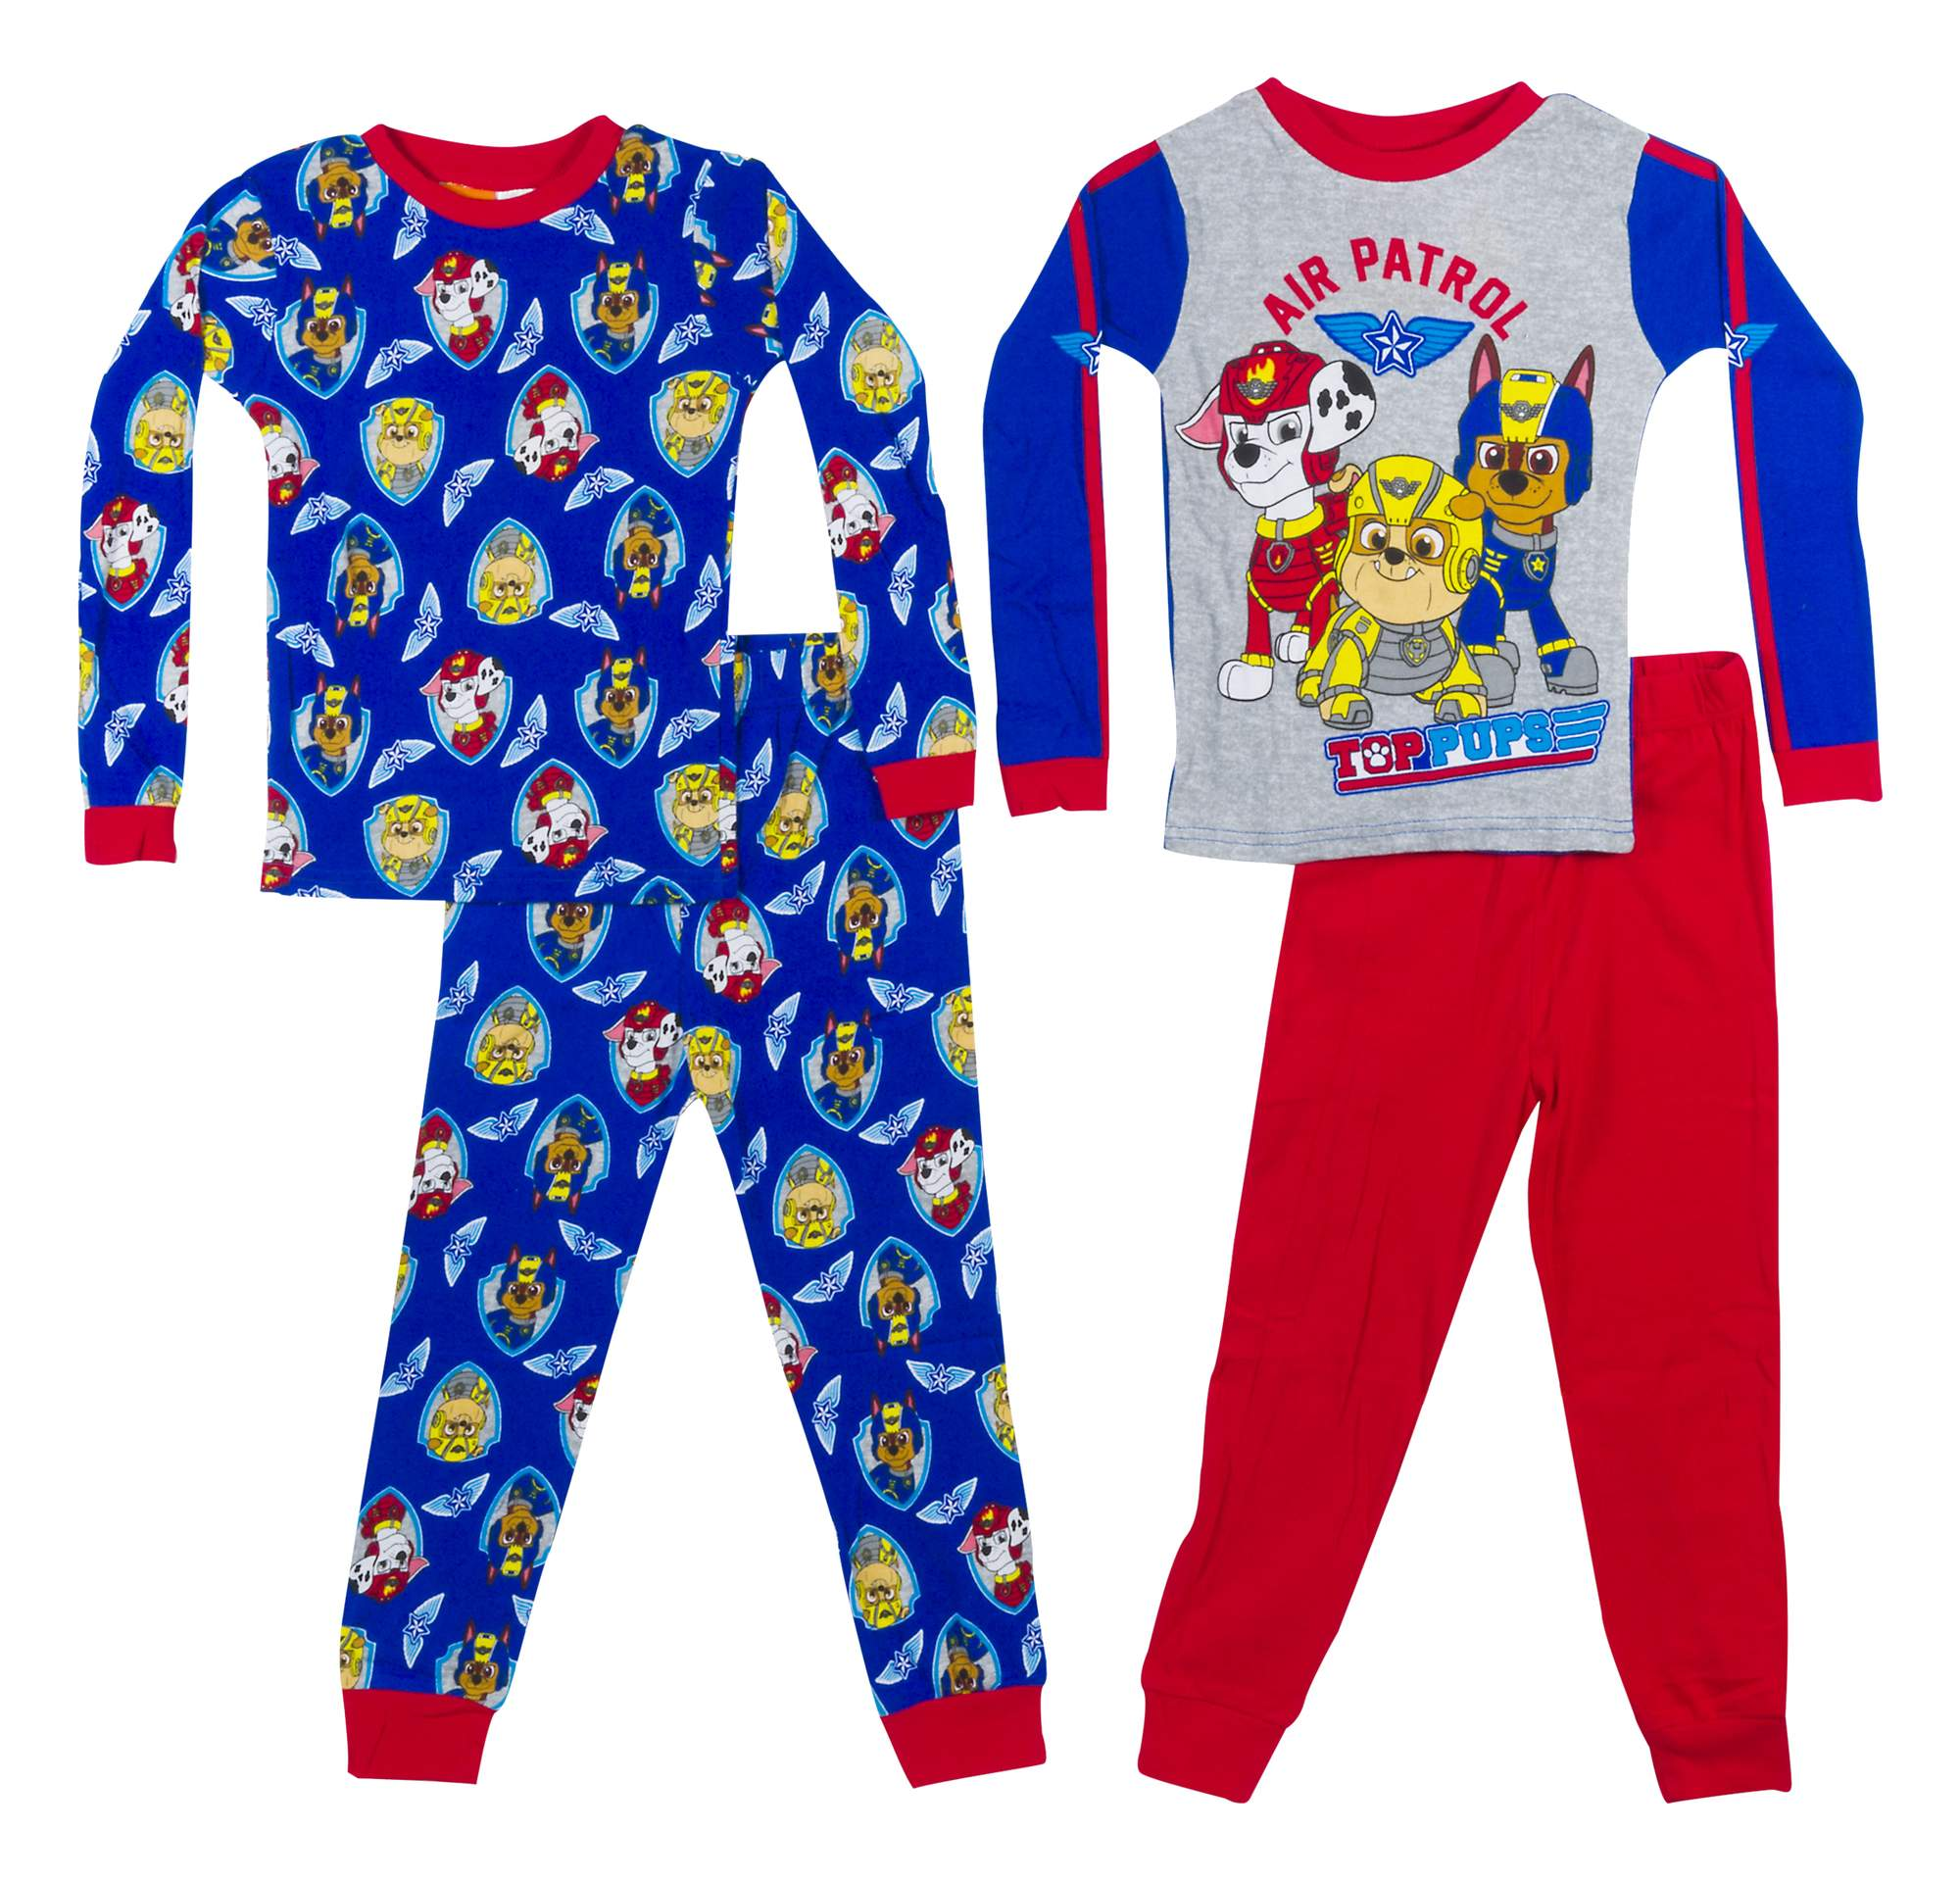 Paw Patrol Boys' Cotton Knit 4-Piece Pajama Set